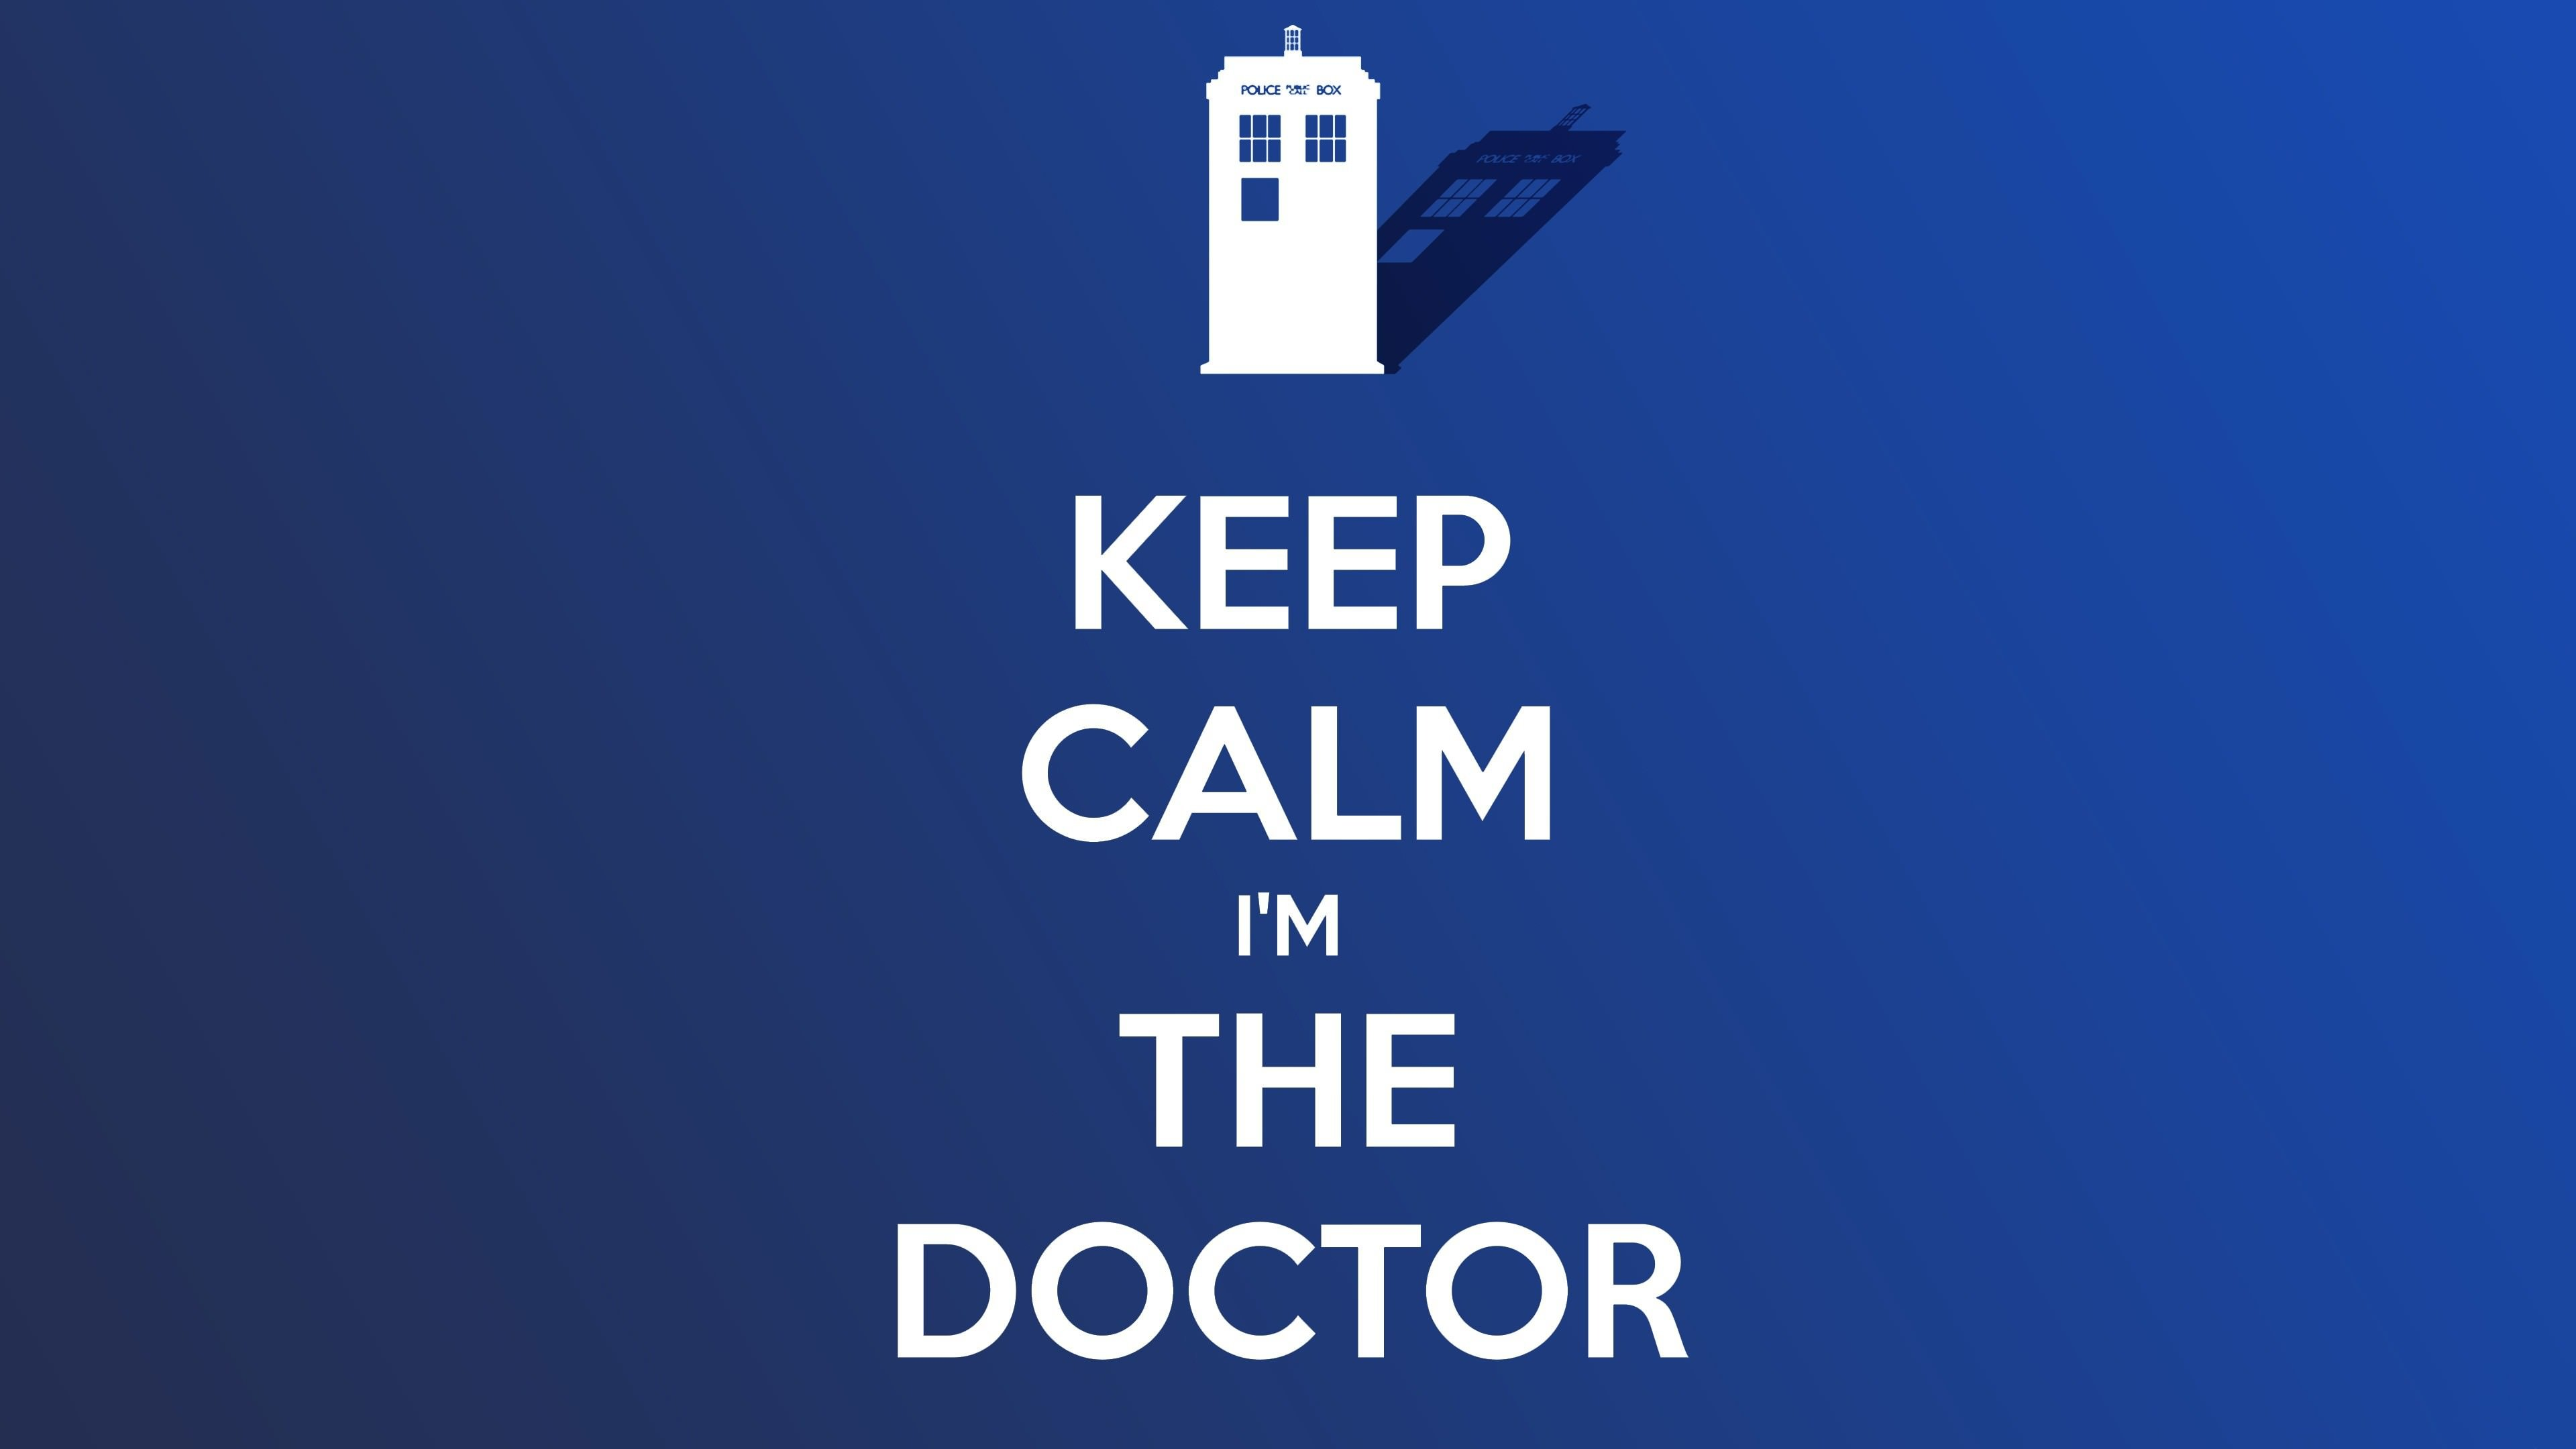 Keep Calm Im The Doctor Wallpaper for Desktop 4K 3840x2160